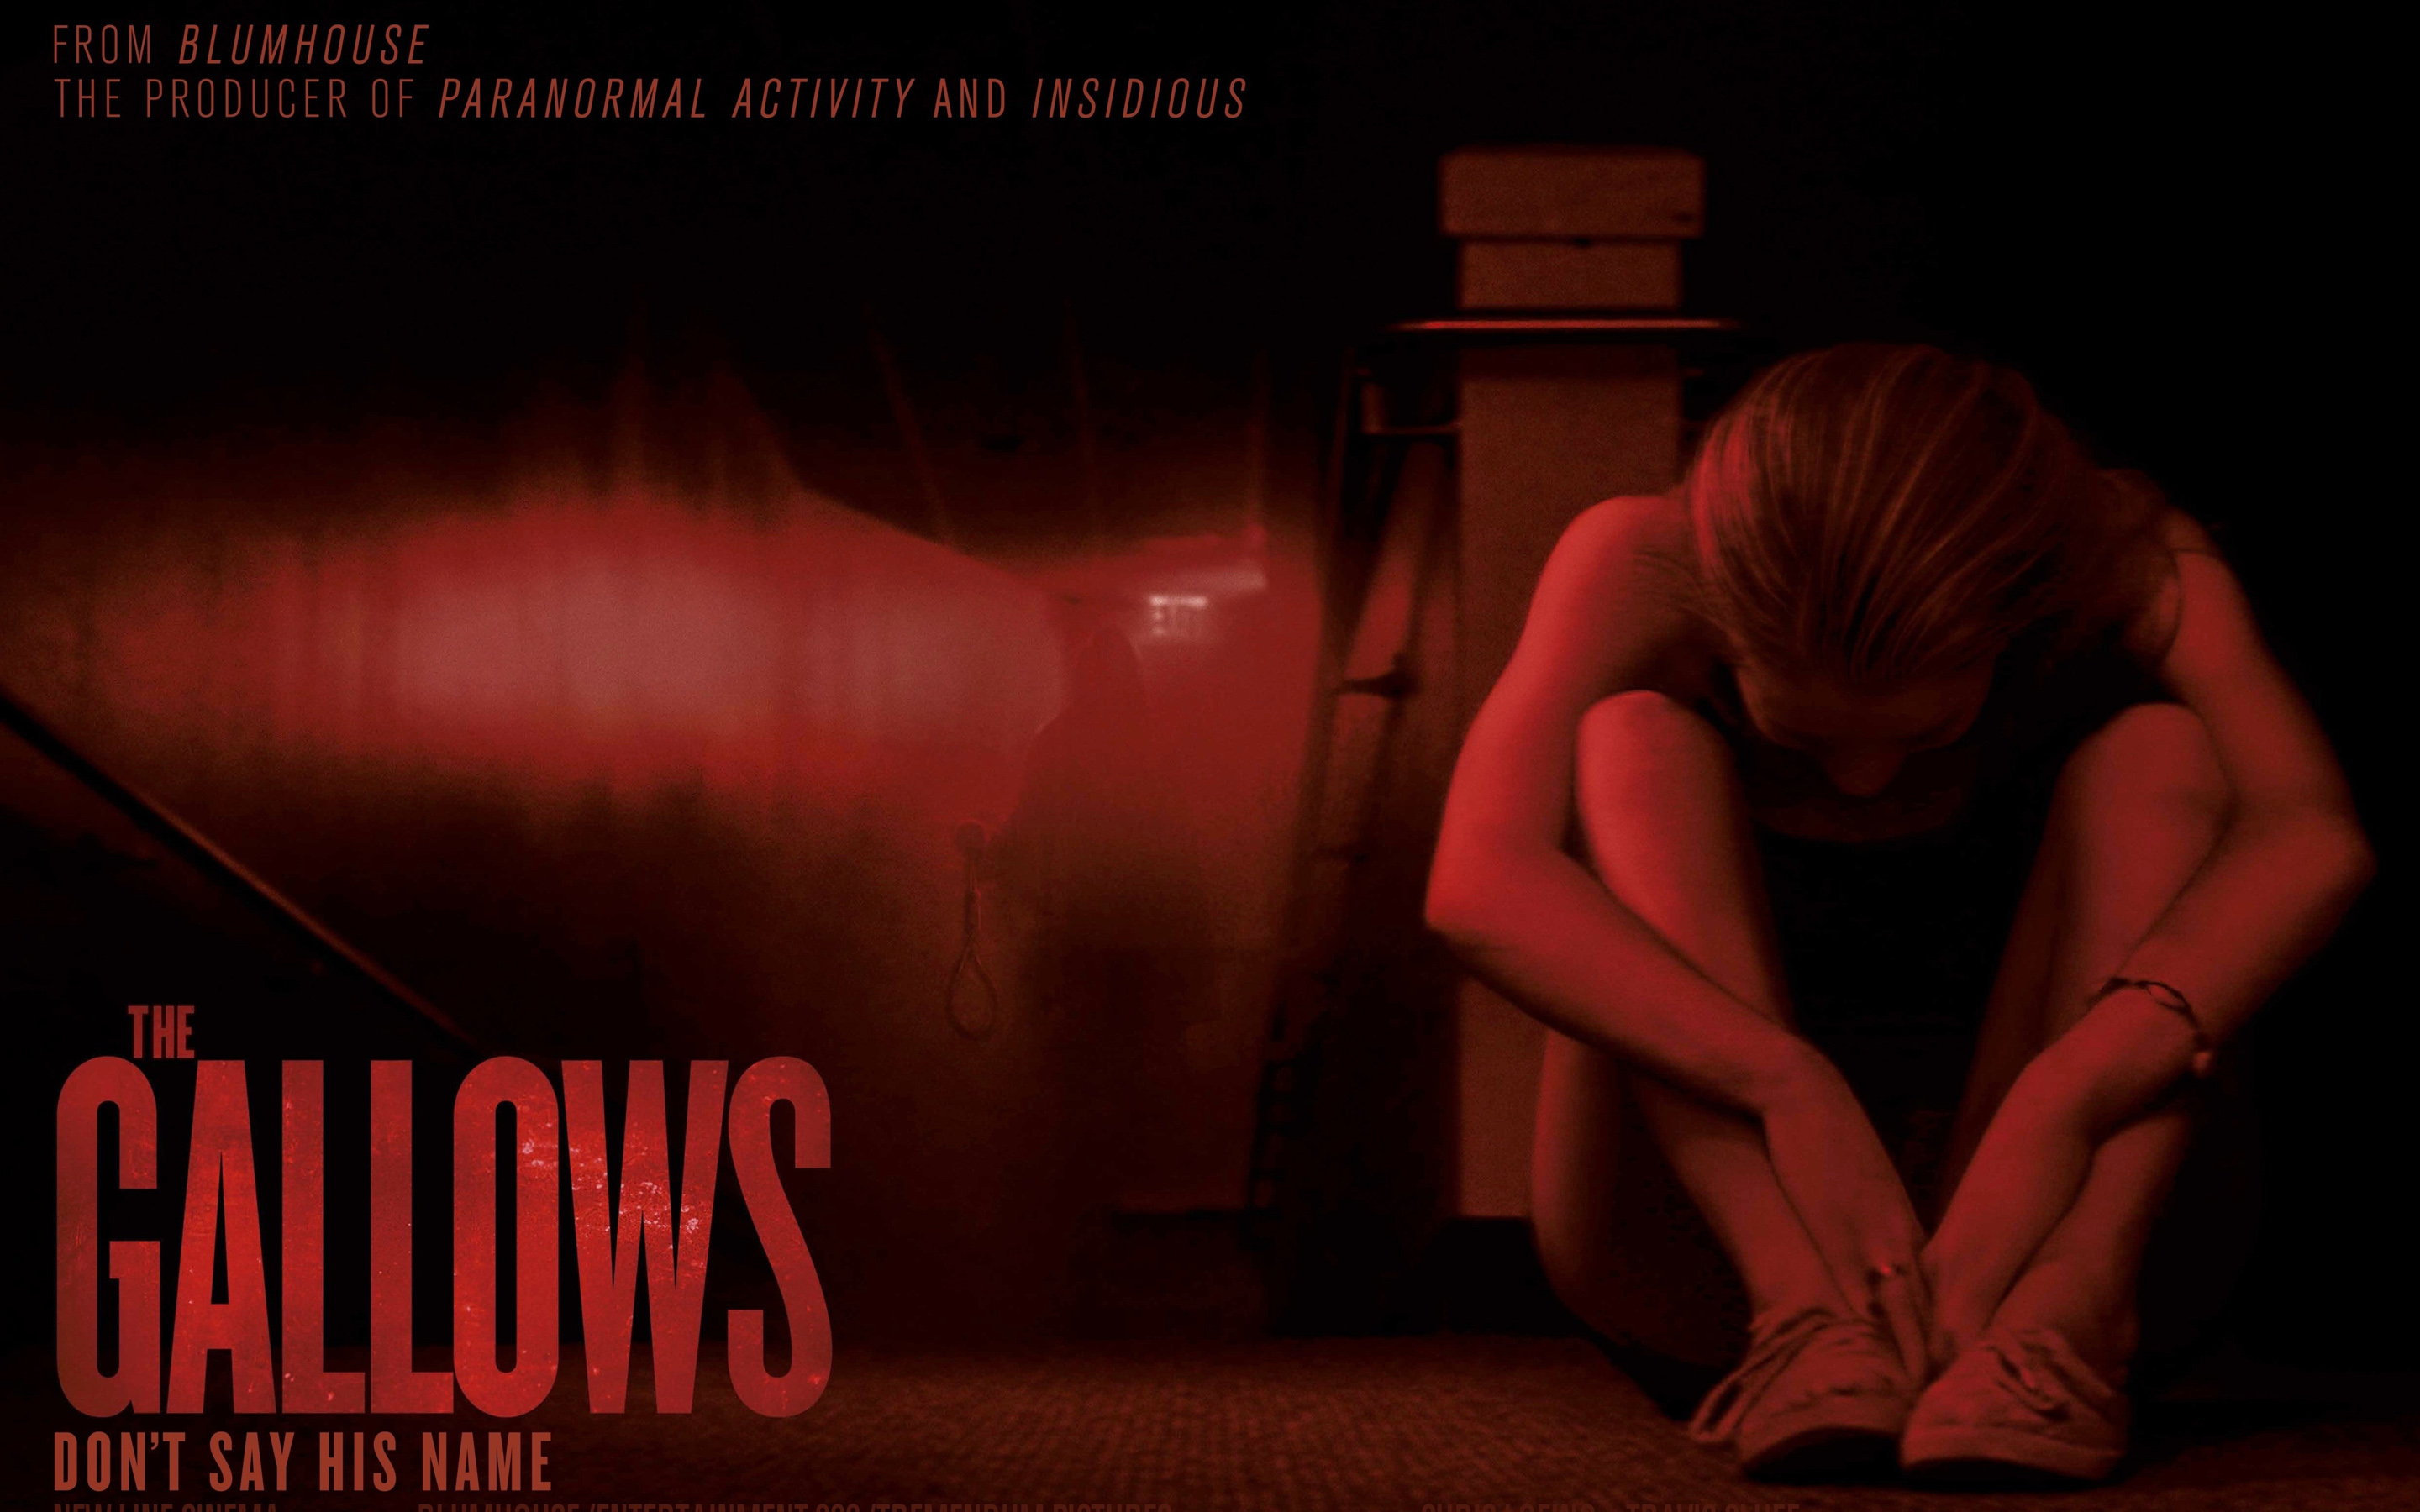 The Gallows 2015 Horror Movie Poster HD Wallpaper copy